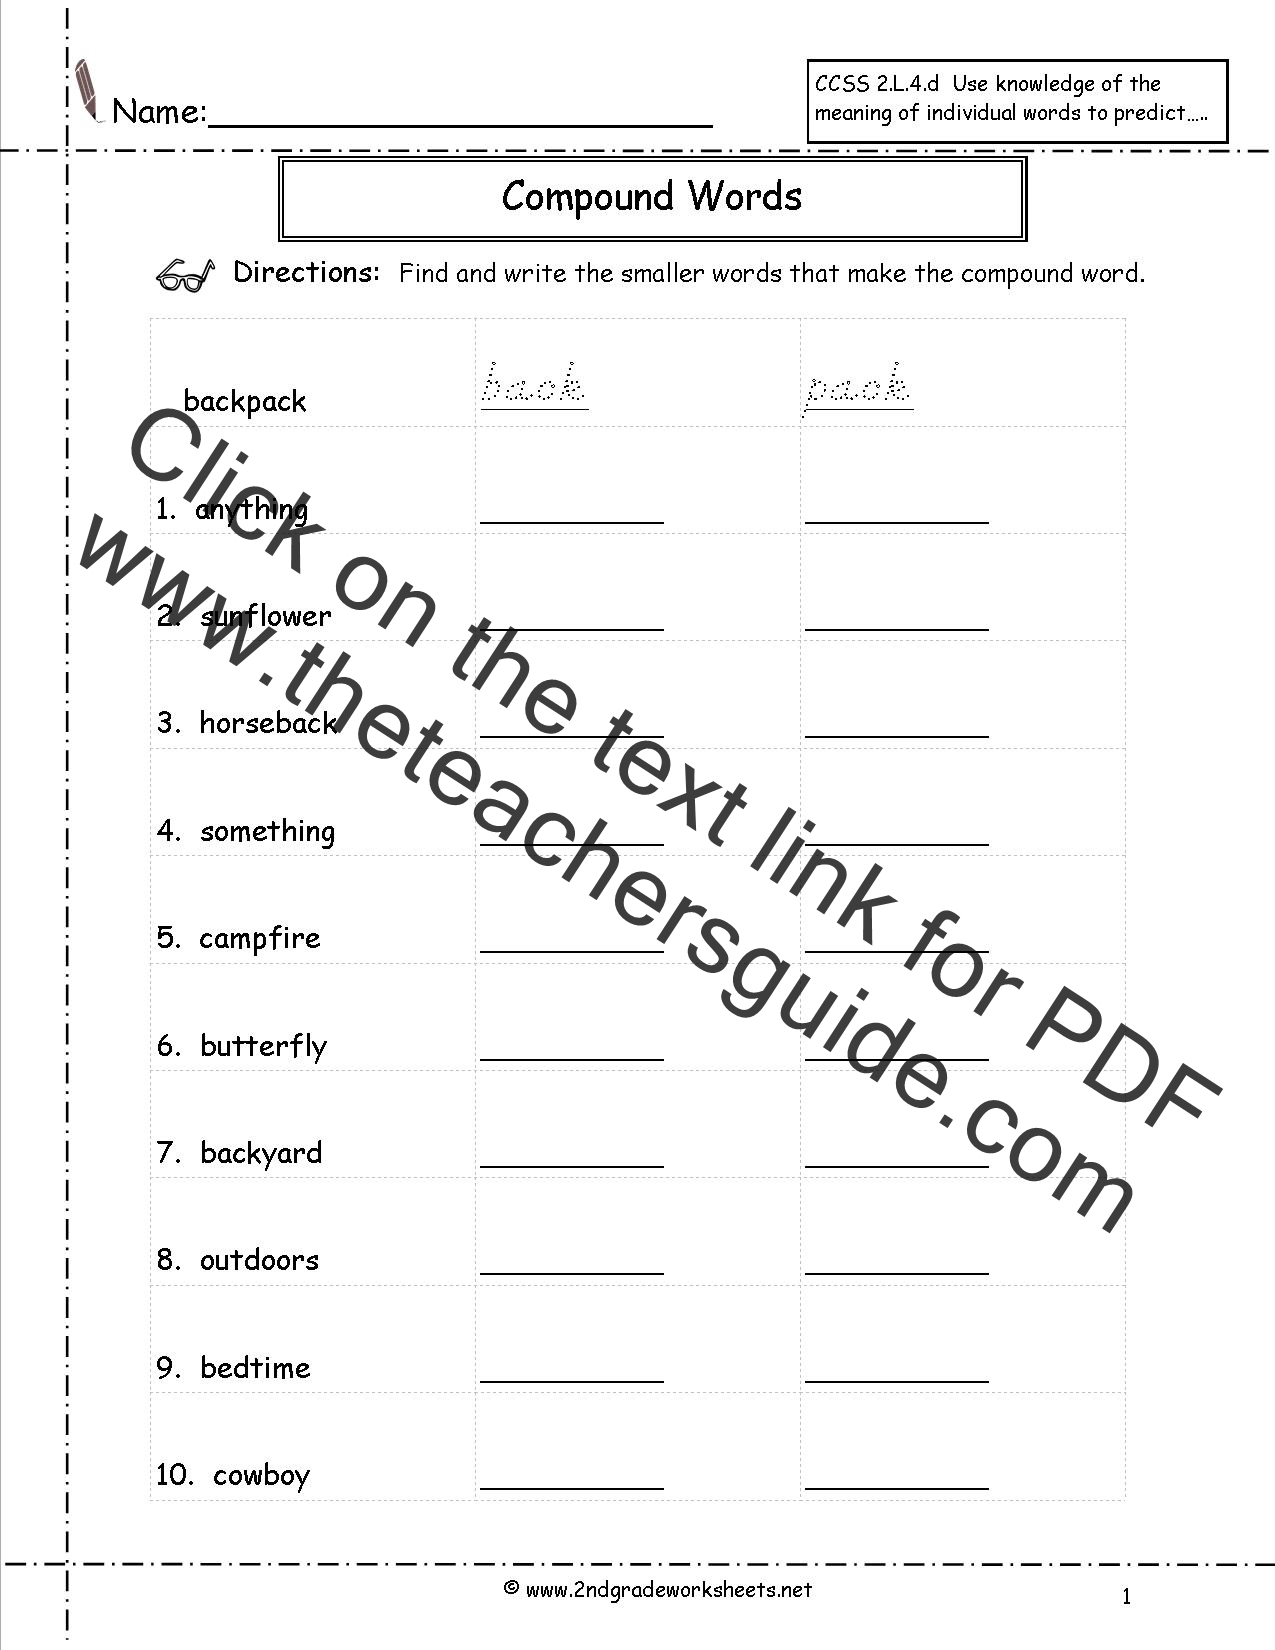 Worksheets Free Worksheets For 2nd Grade free languagegrammar worksheets and printouts compound words worksheets